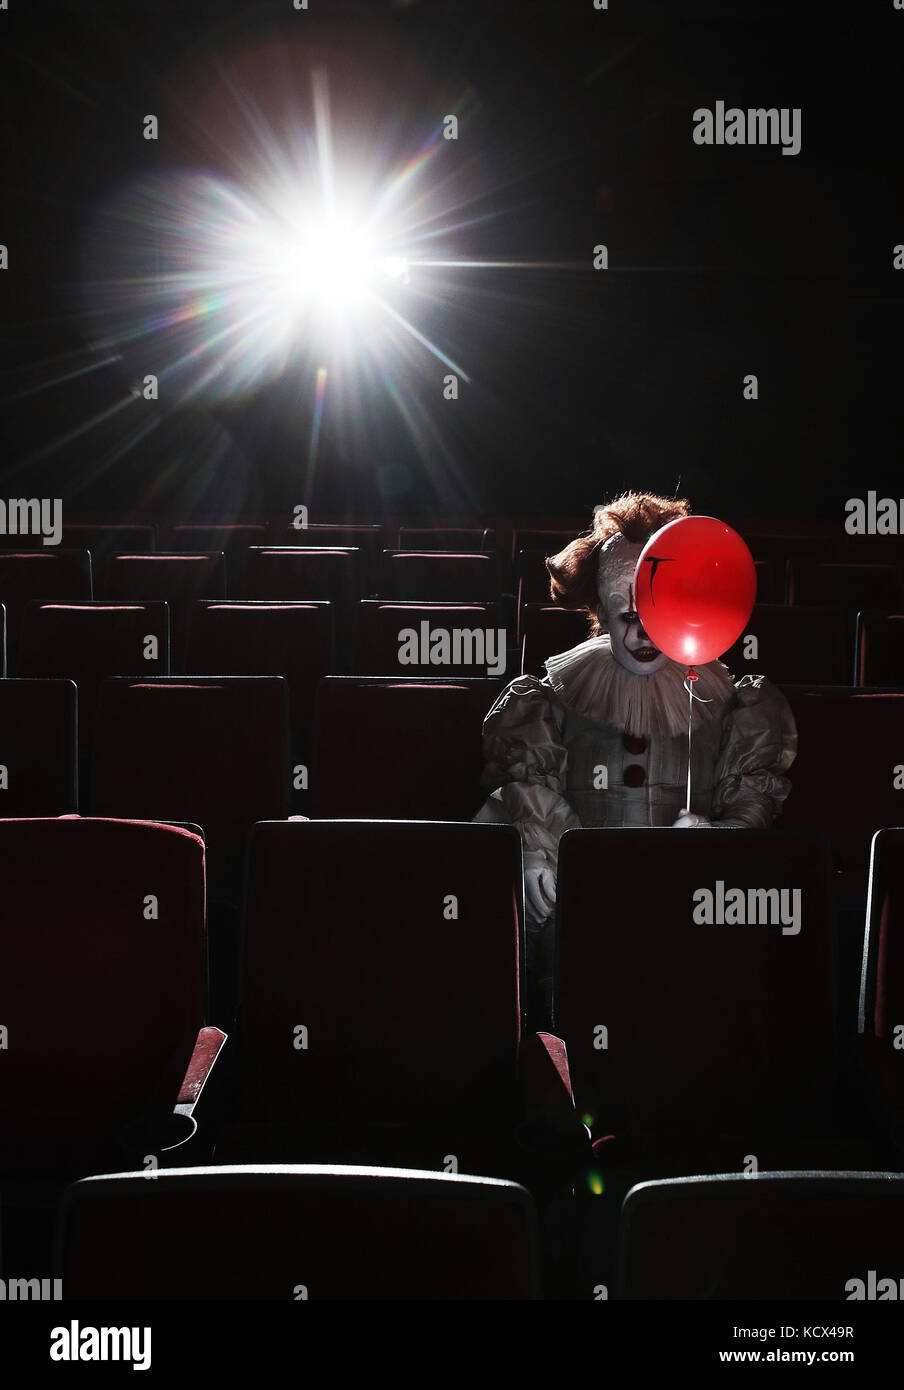 Pennywise the Clown is unleashed at the Peckhamplex Cinema in a chilling immersive screening of the new motion picture - Stock Image